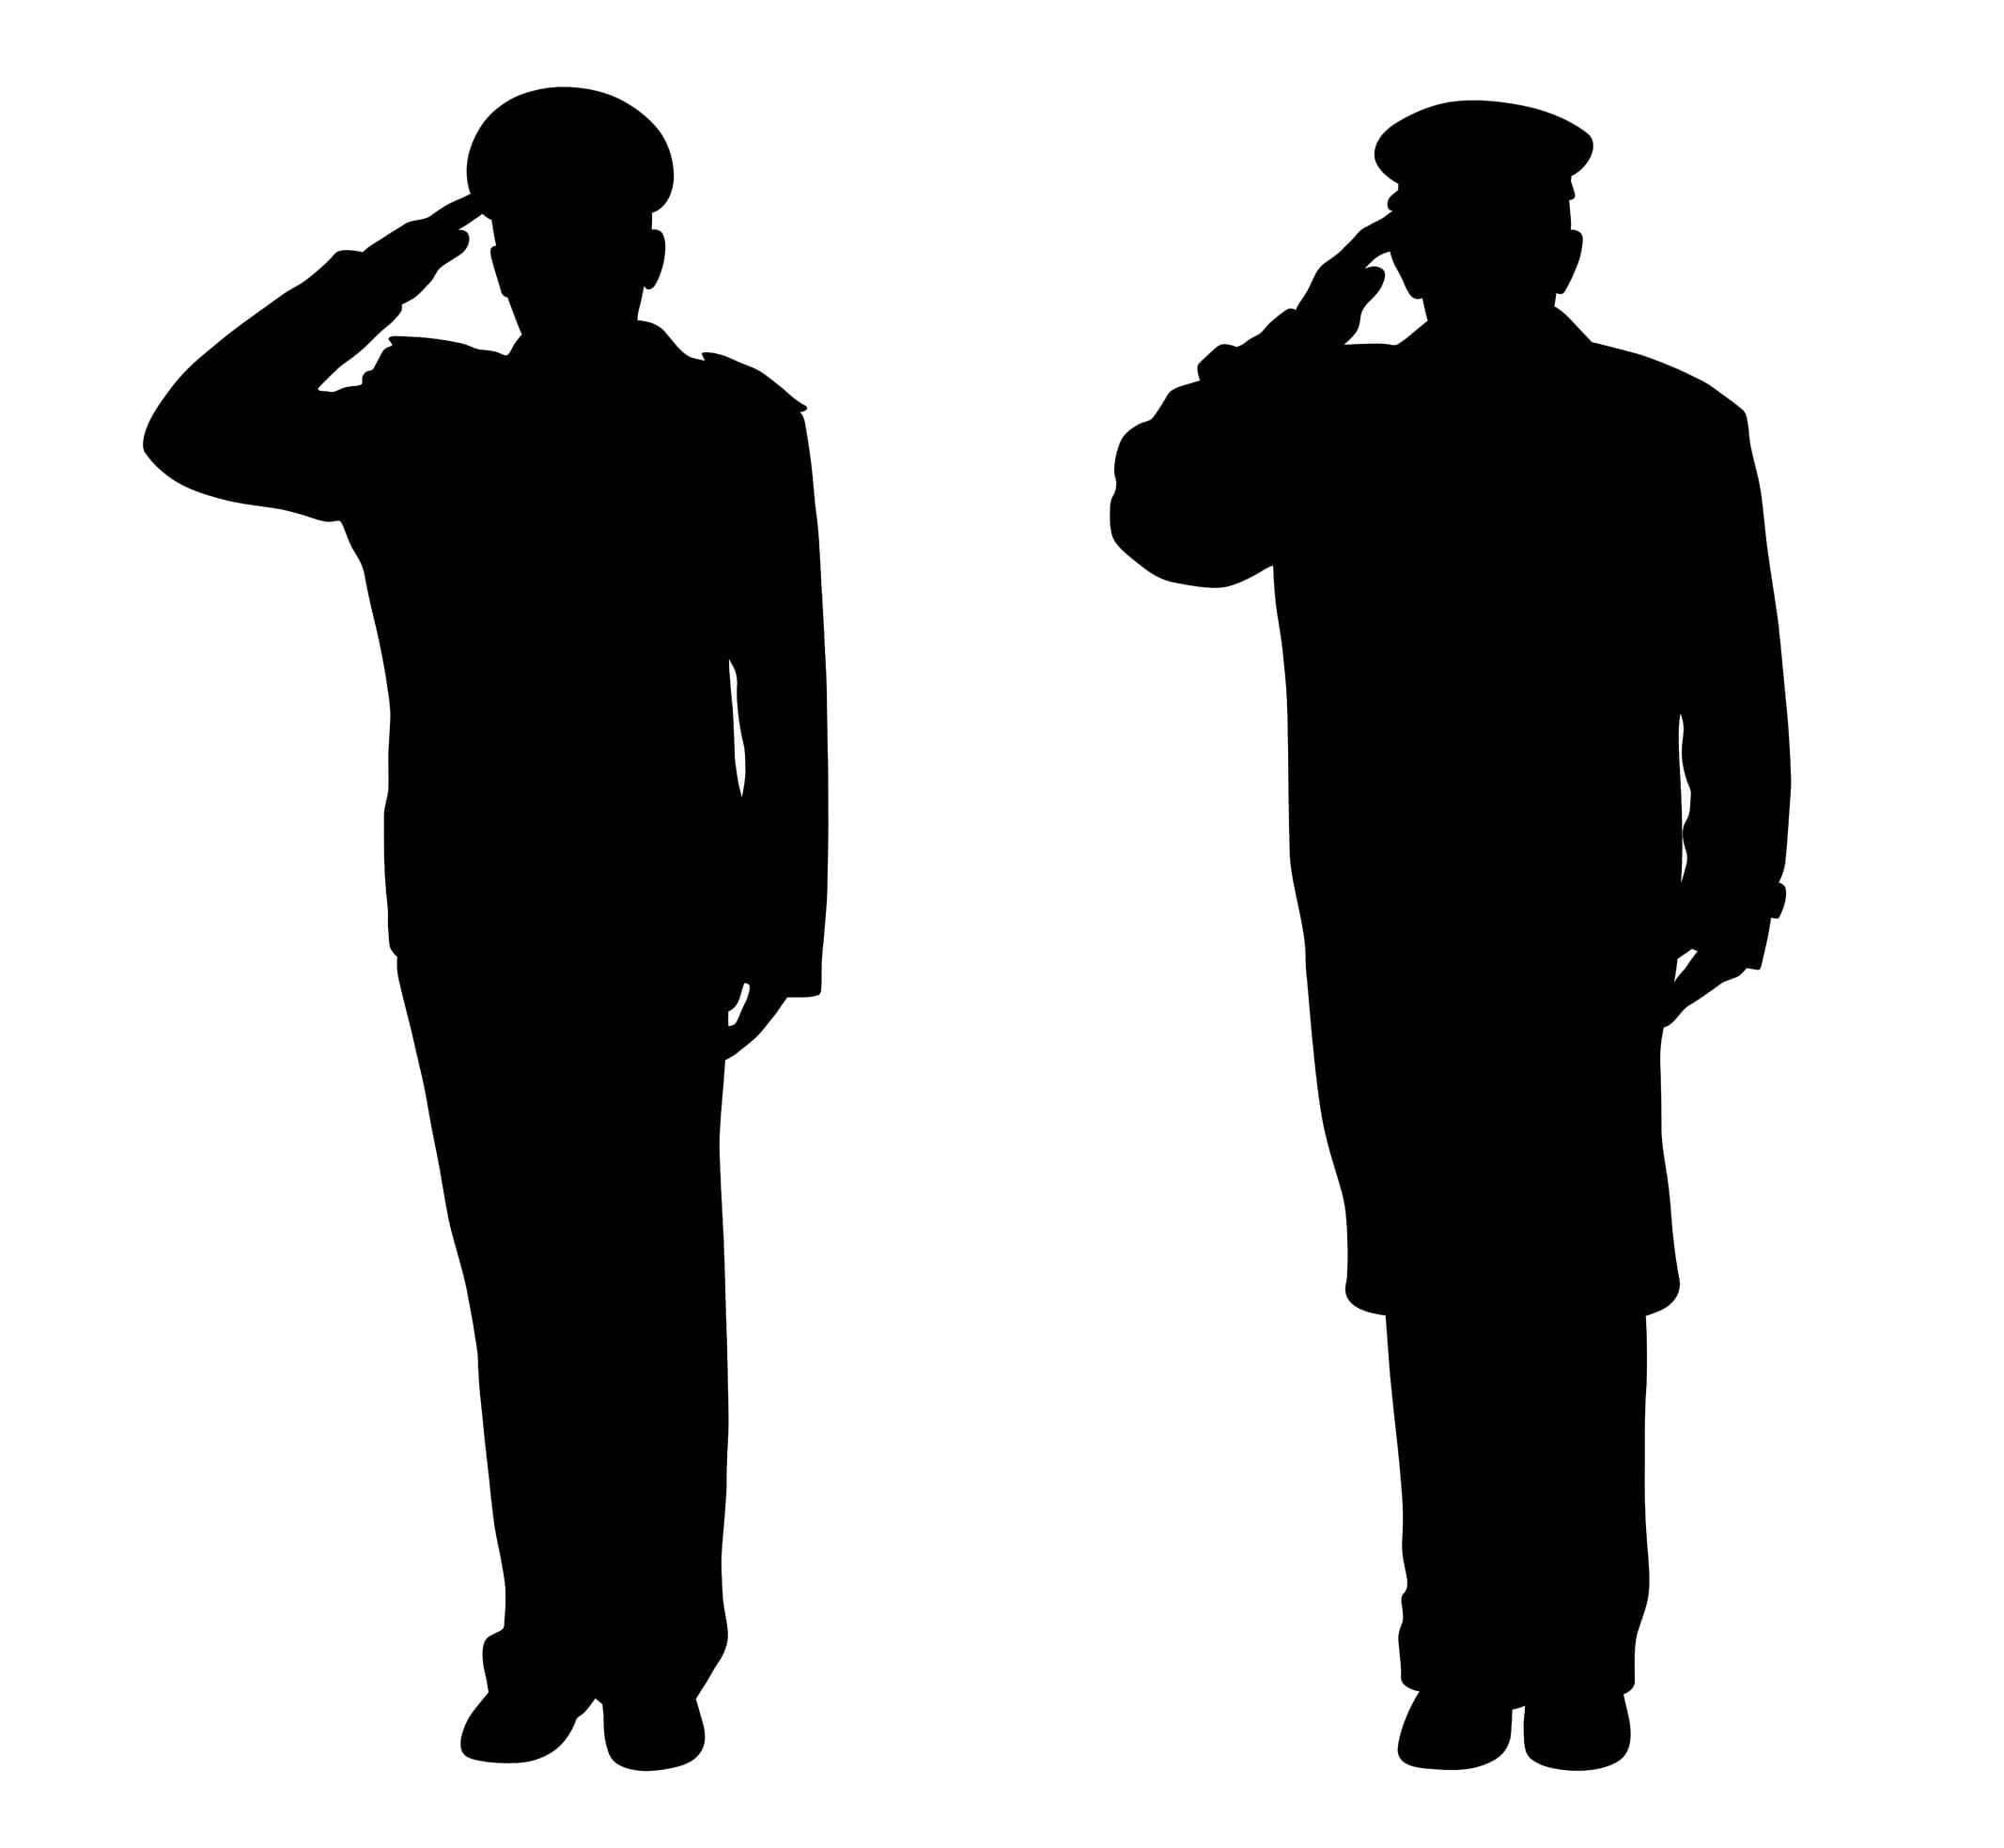 soldier salute silhouette soldier saluting silhouette soldier silhouette salute